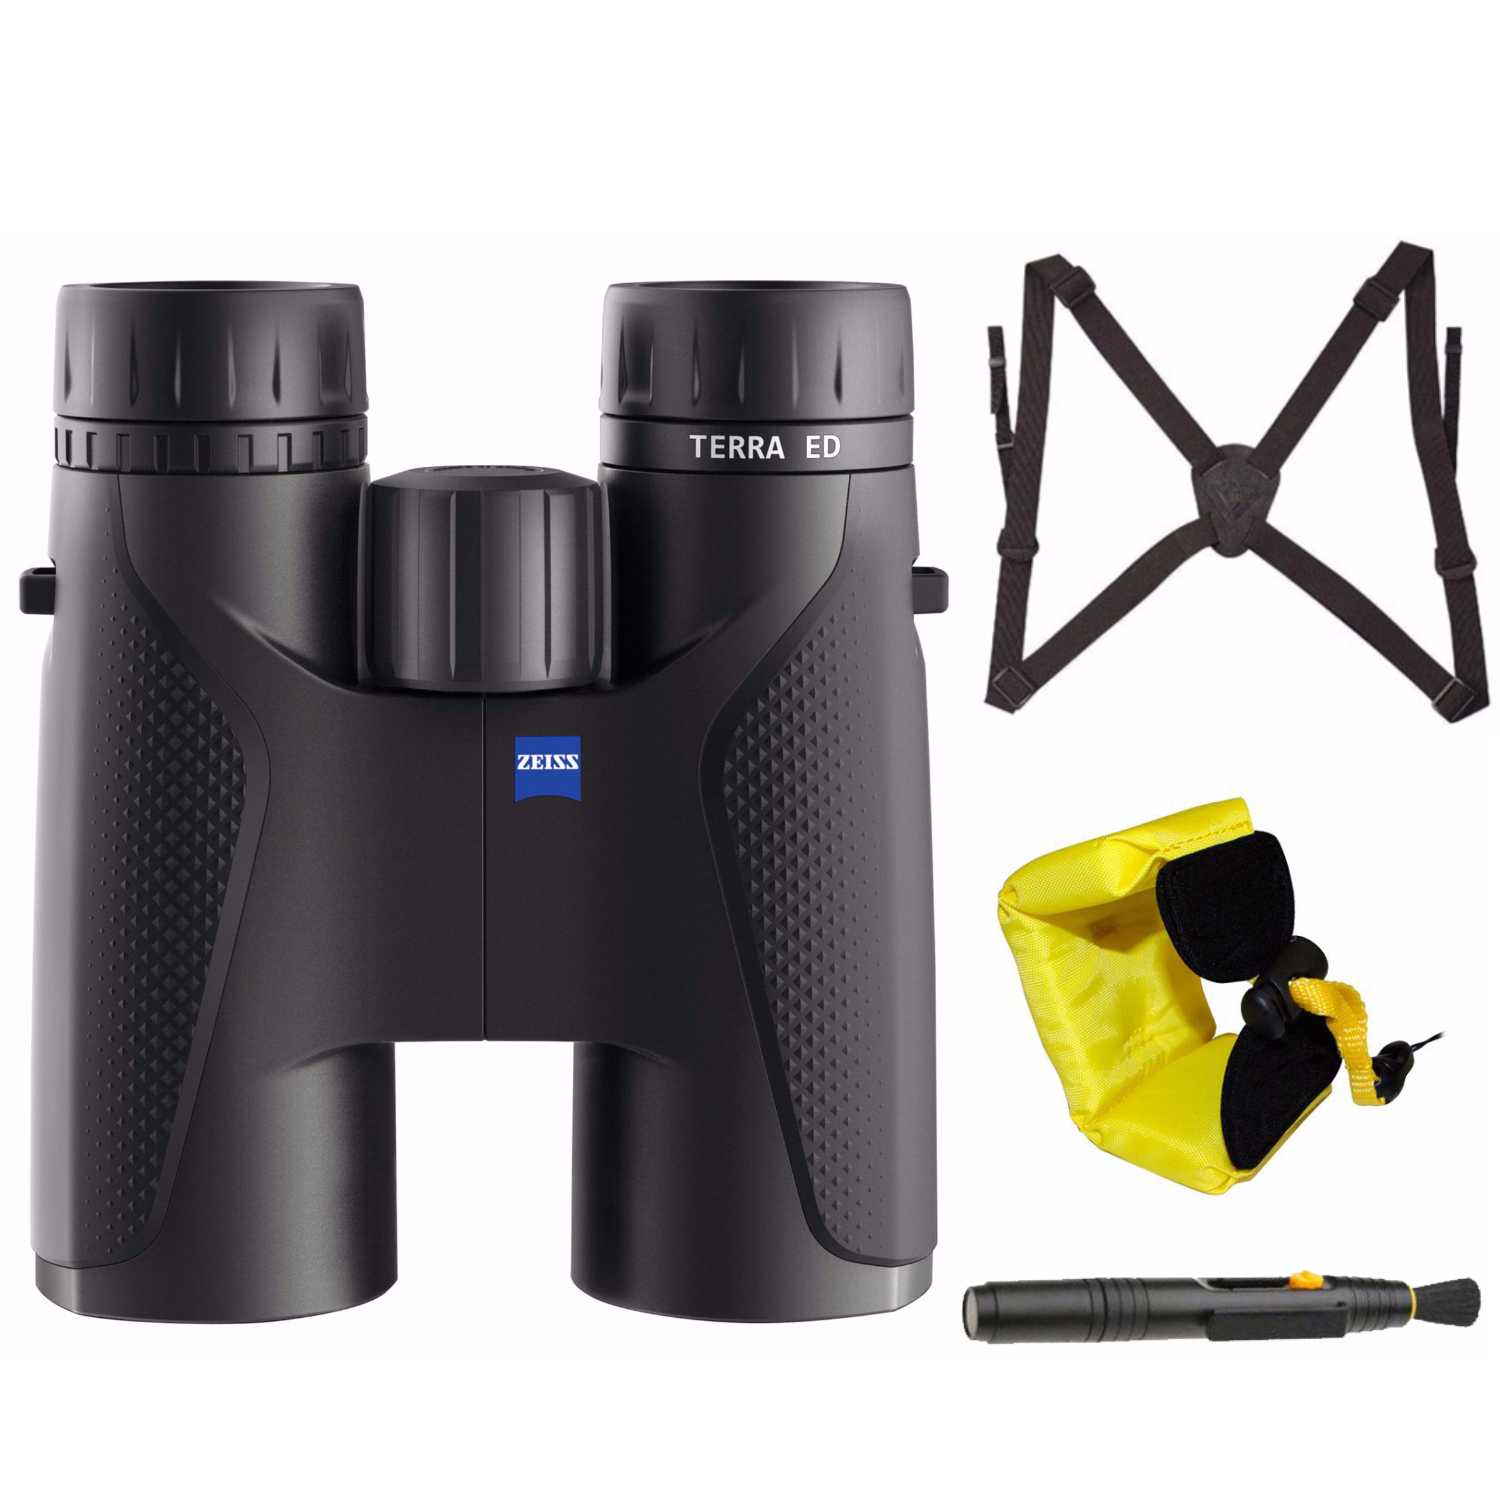 Zeiss Optical 10 x 42 Terra ED Binocular (Black) with Harness and Floating Strap by Carl Zeiss